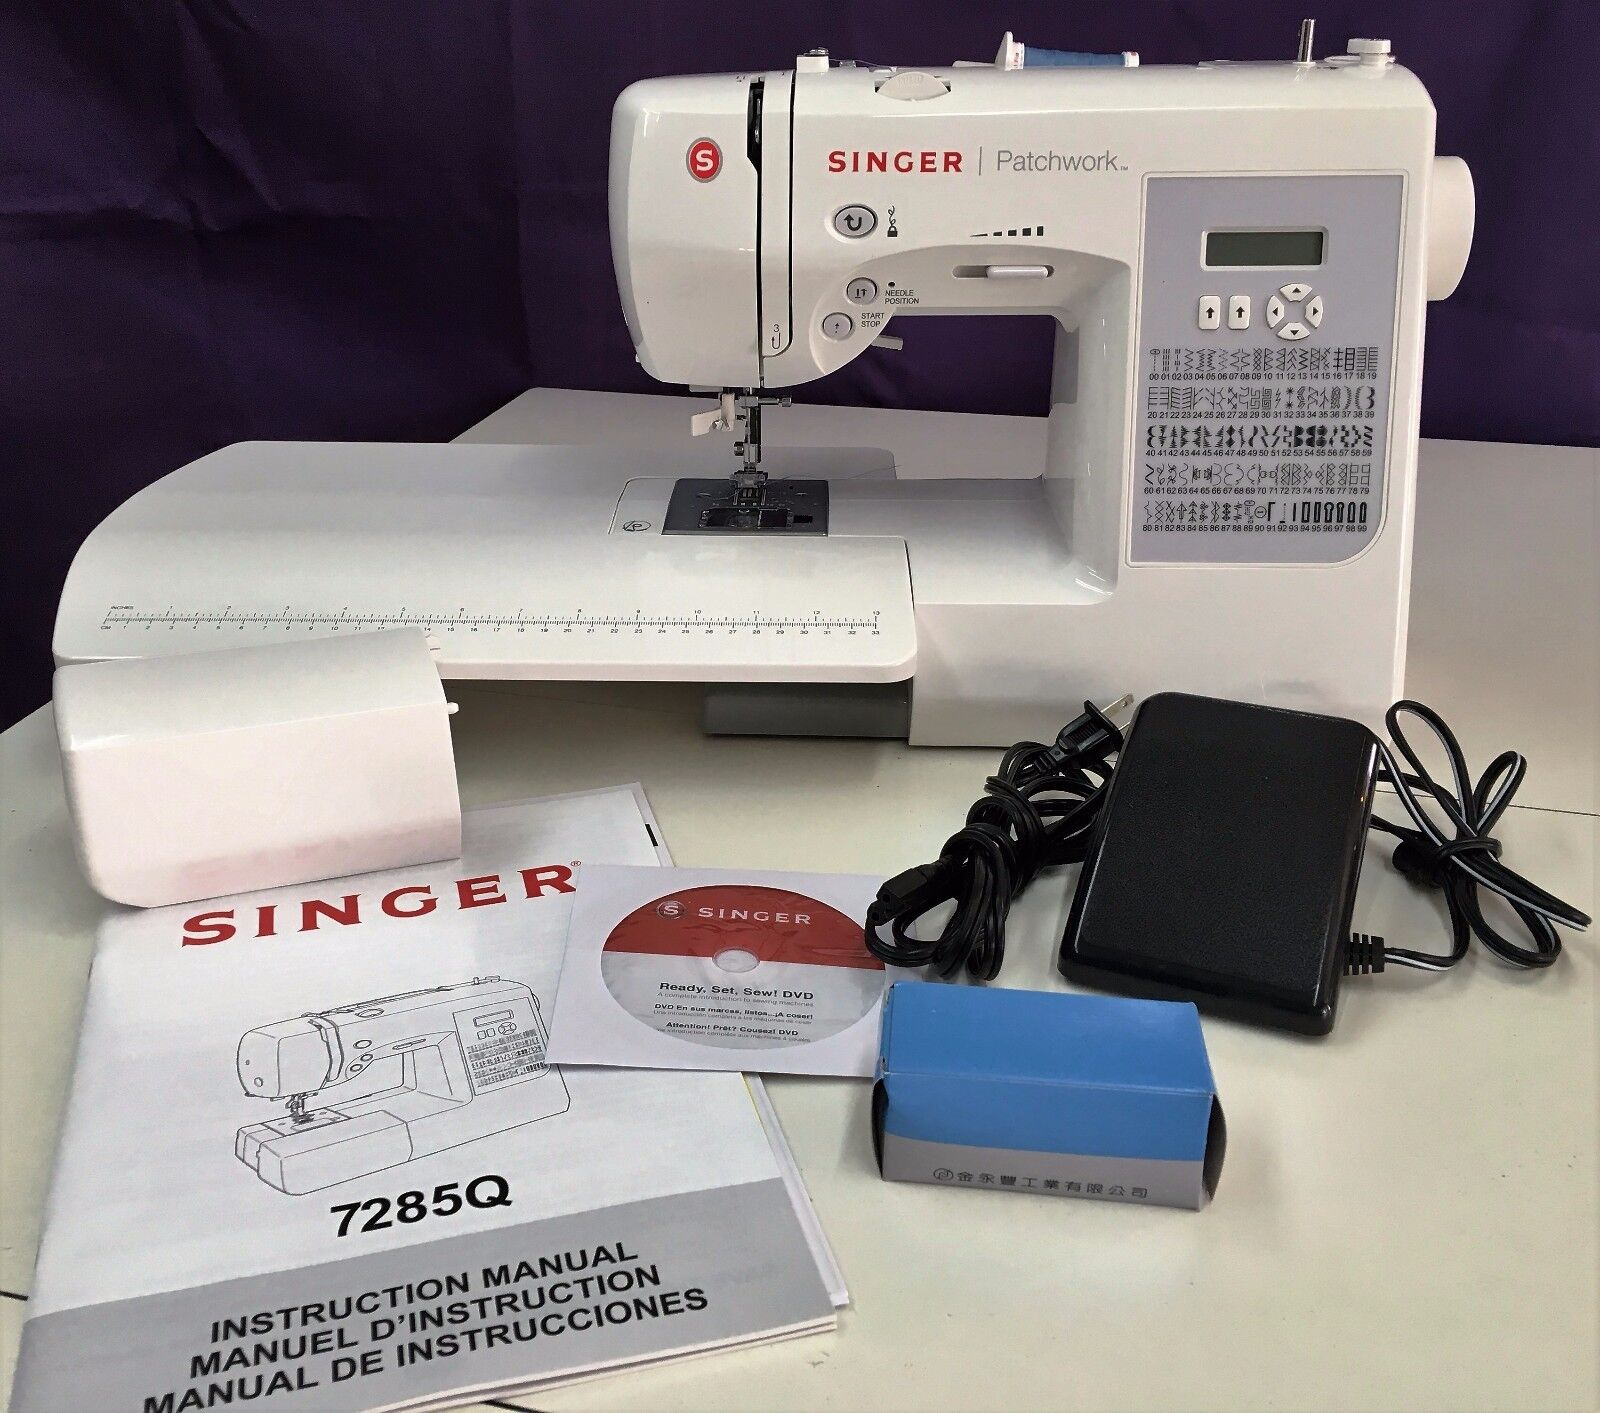 SINGER 7285Q PATCHWORK NEWEST QUILTING & SEWING MACHINE Authorized Singer Dealer SINGER Does Not Apply